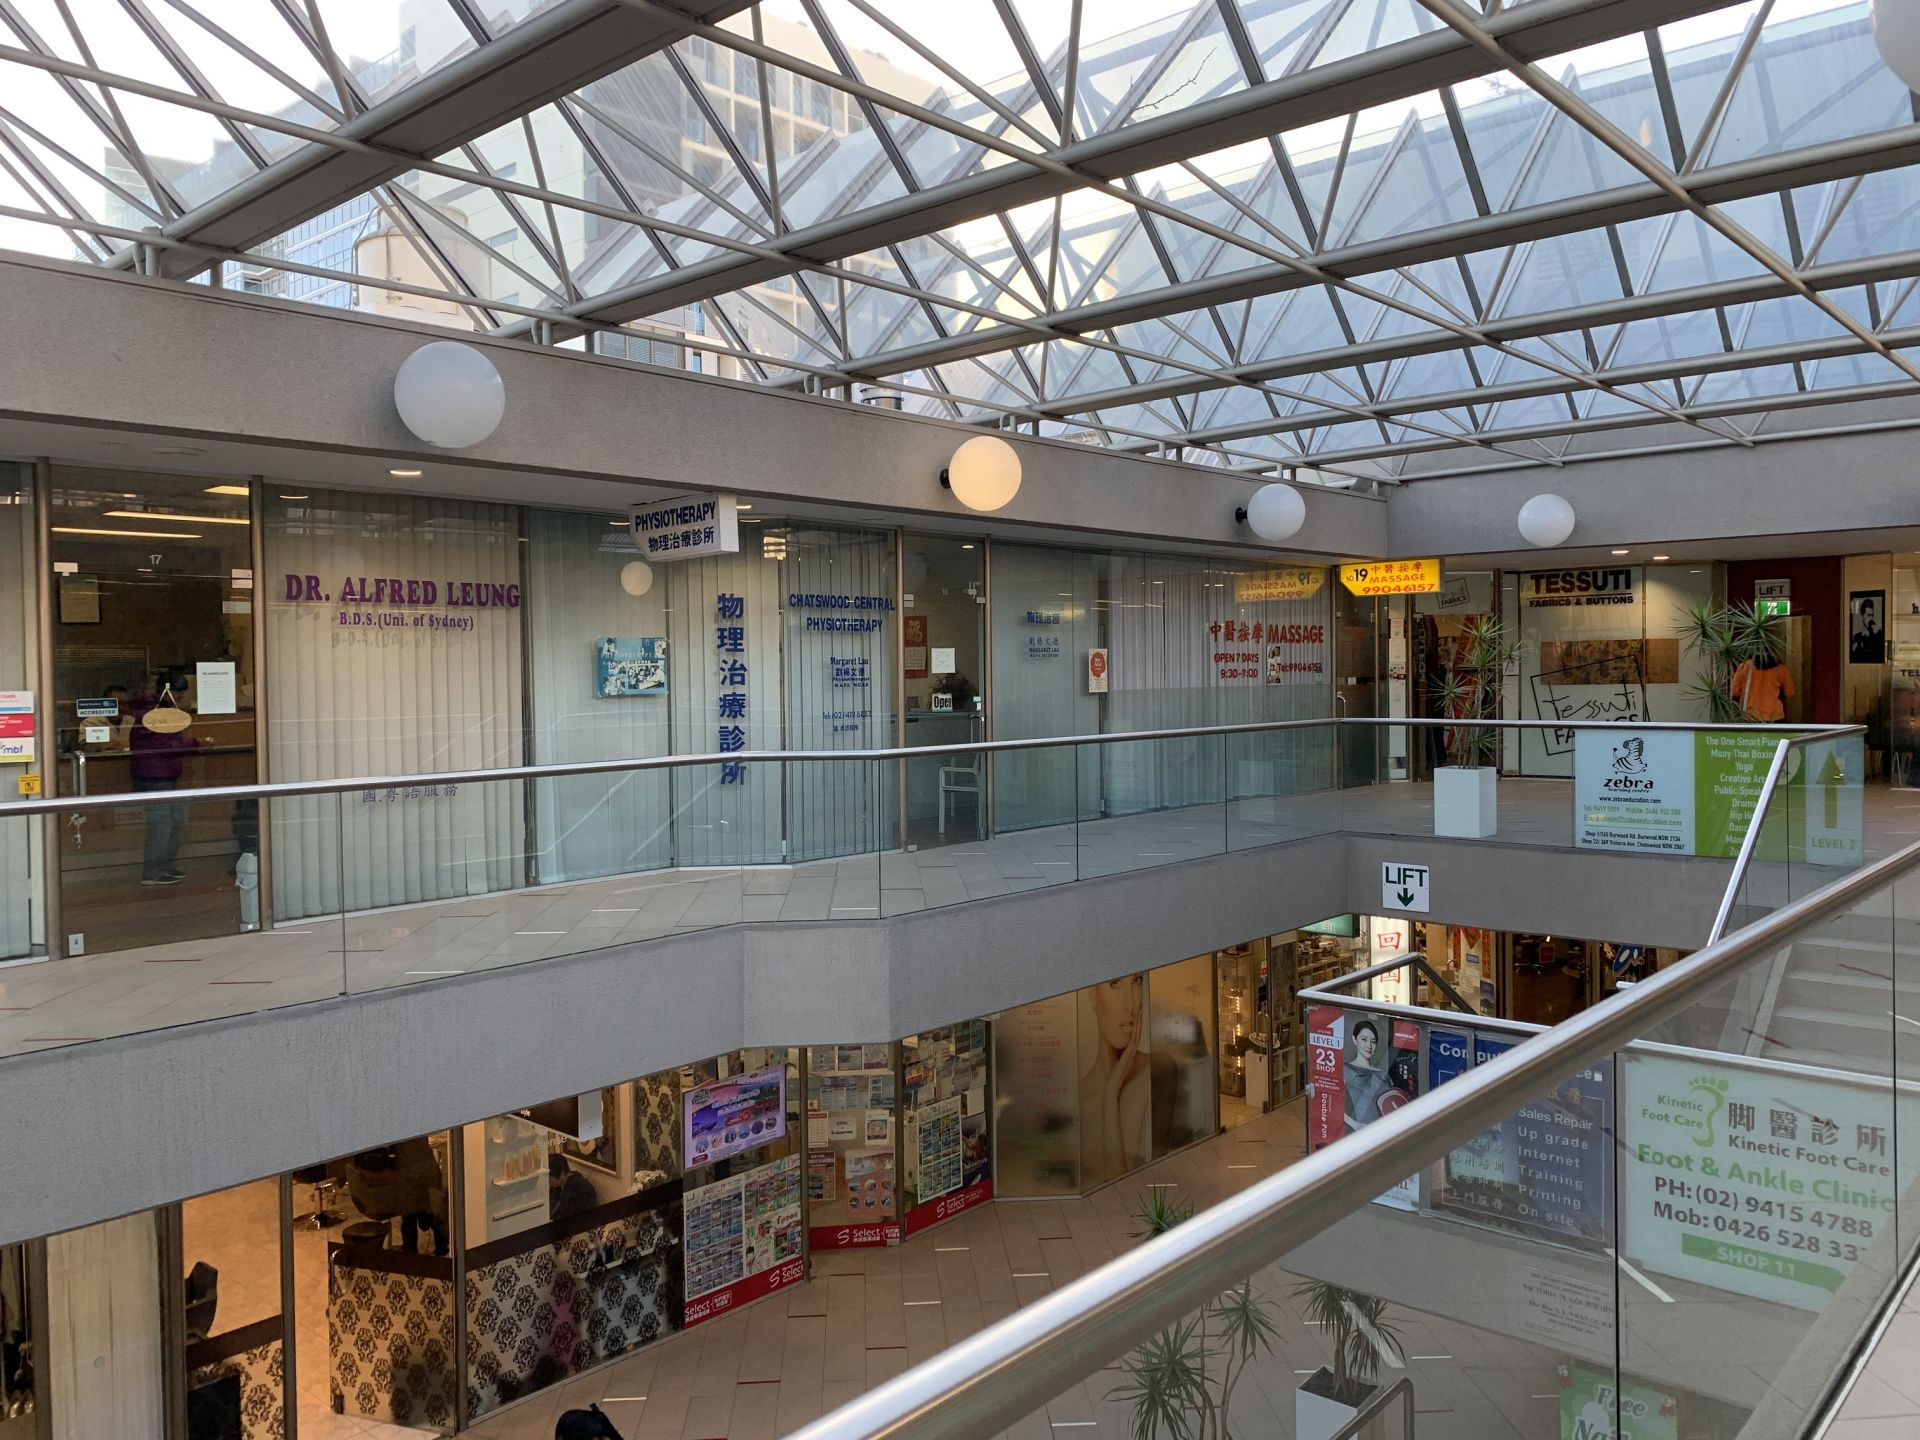 Medical / Retail Suite Chatswood